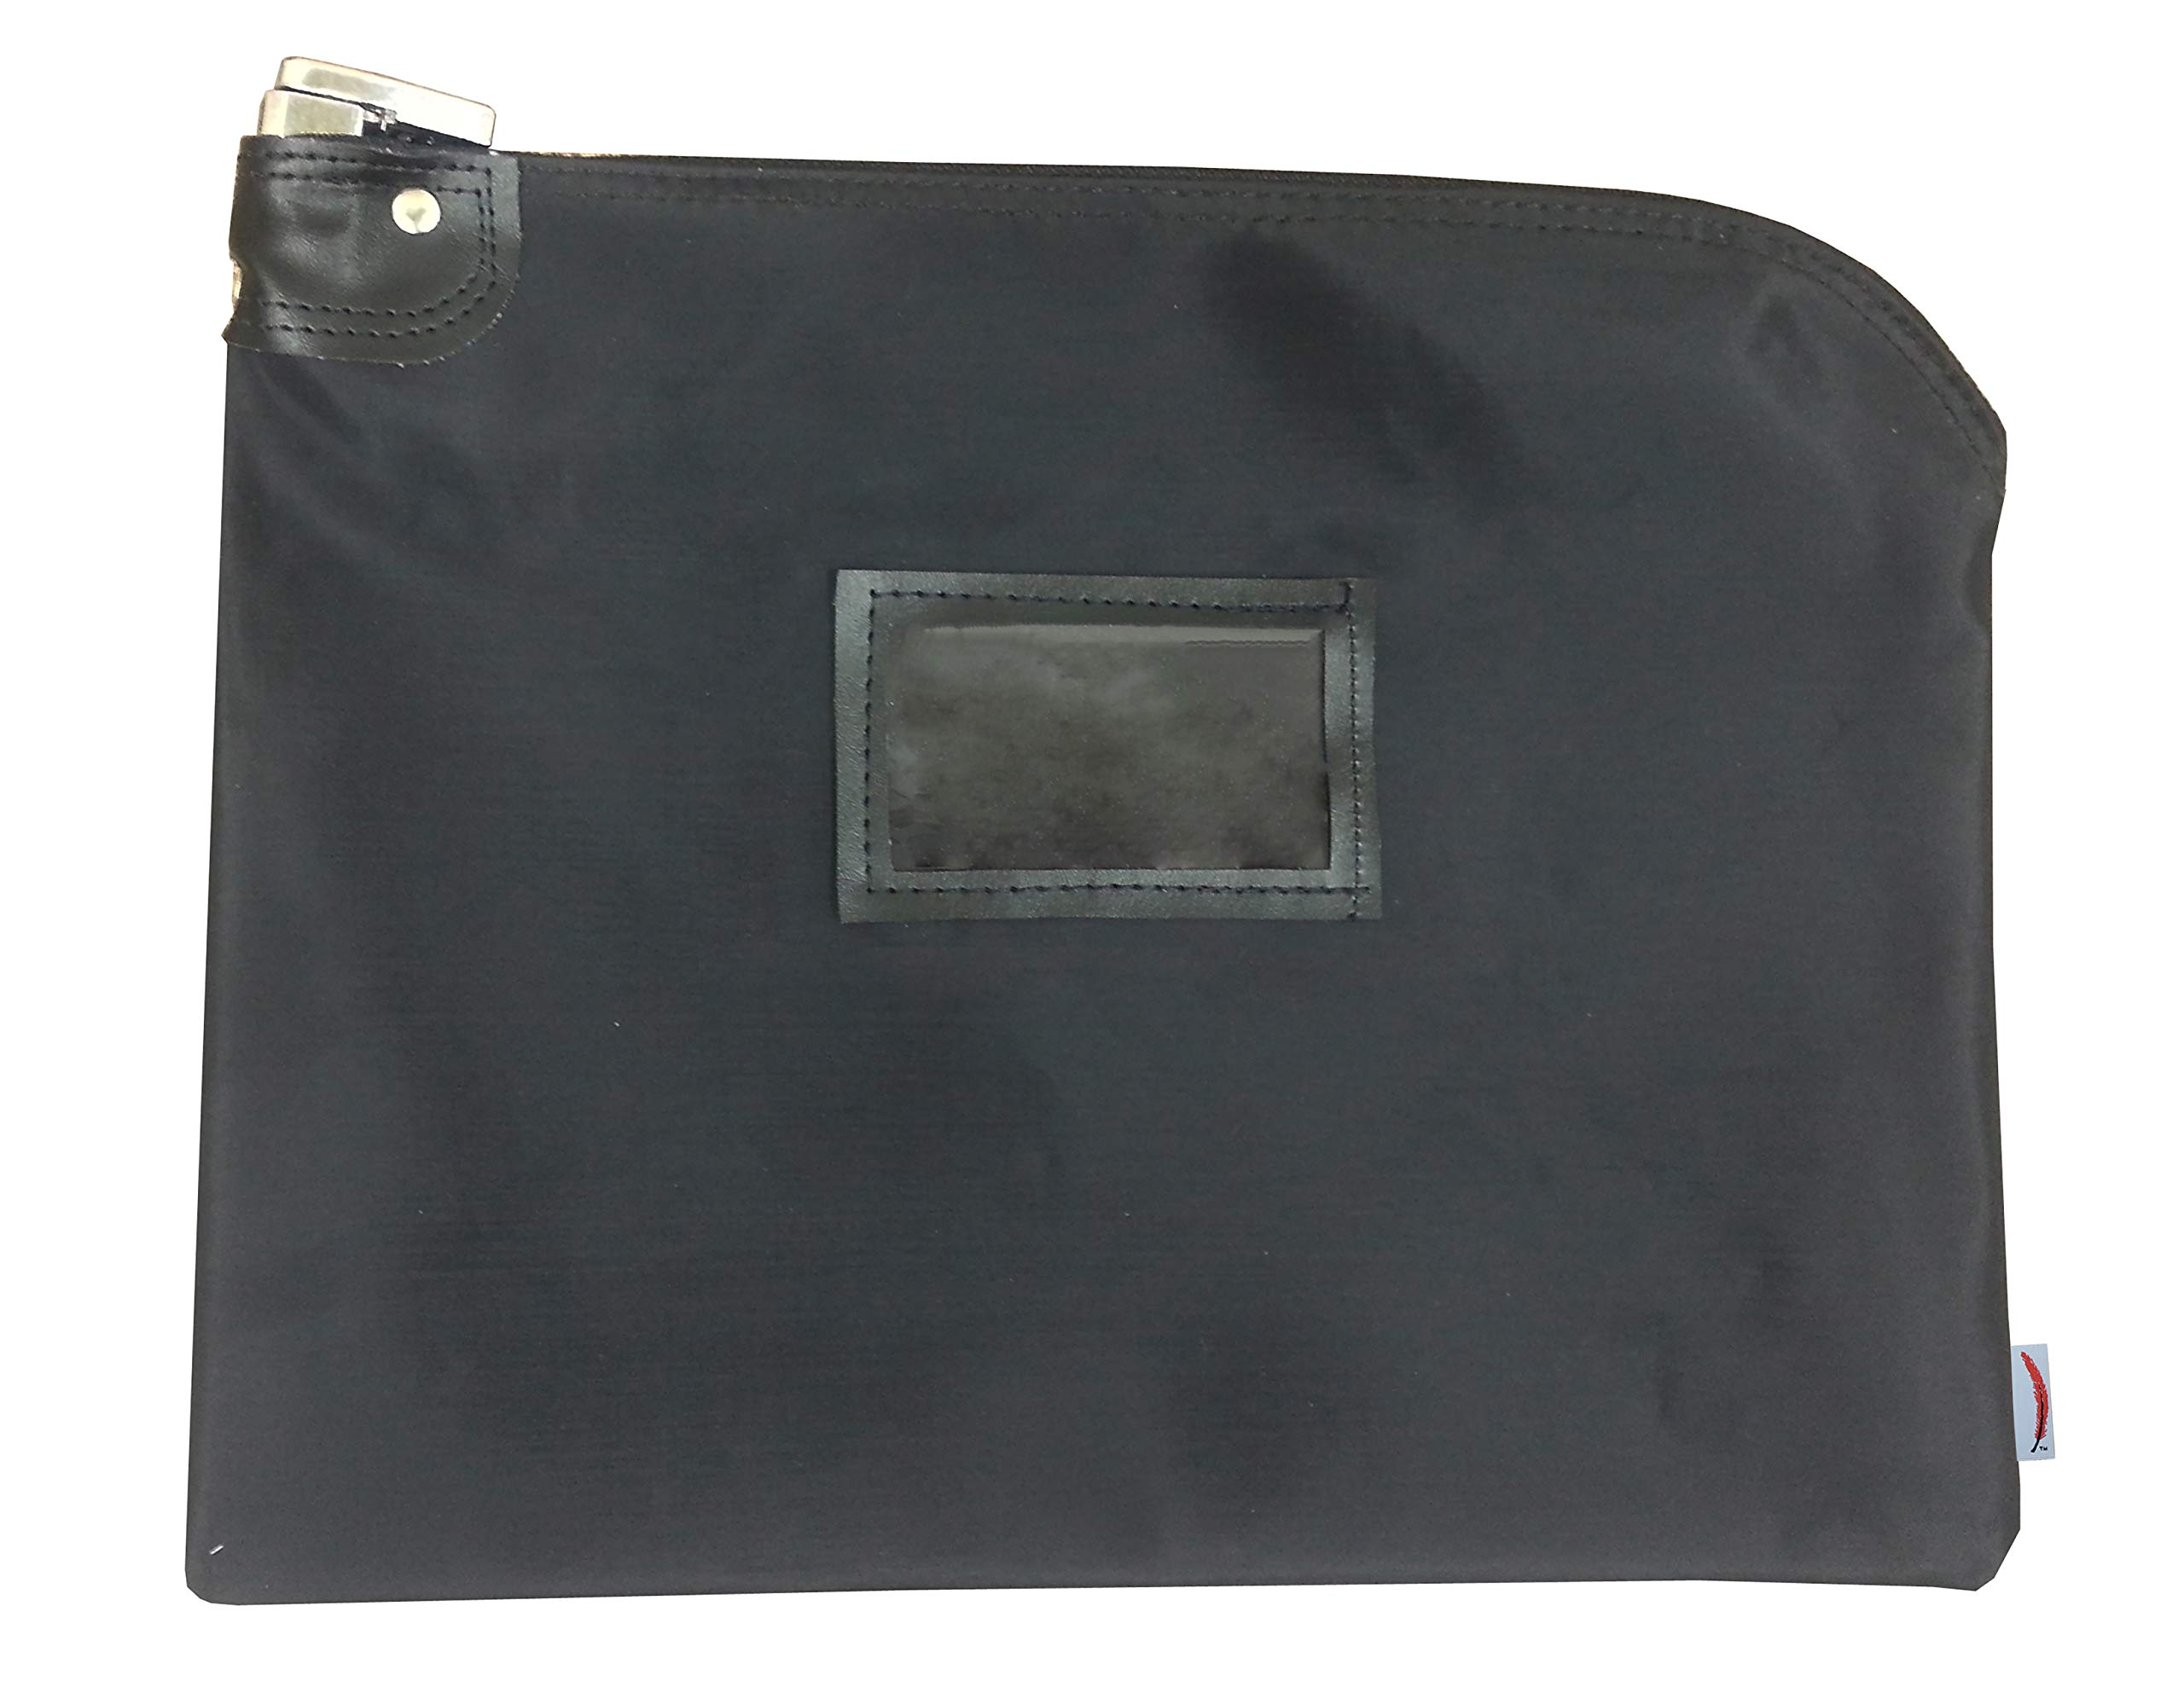 Locking Document HIPAA Bag 15 x 19 Medical File Security Legal Size Records Courier Bag (Black) by Cardinal bag supplies